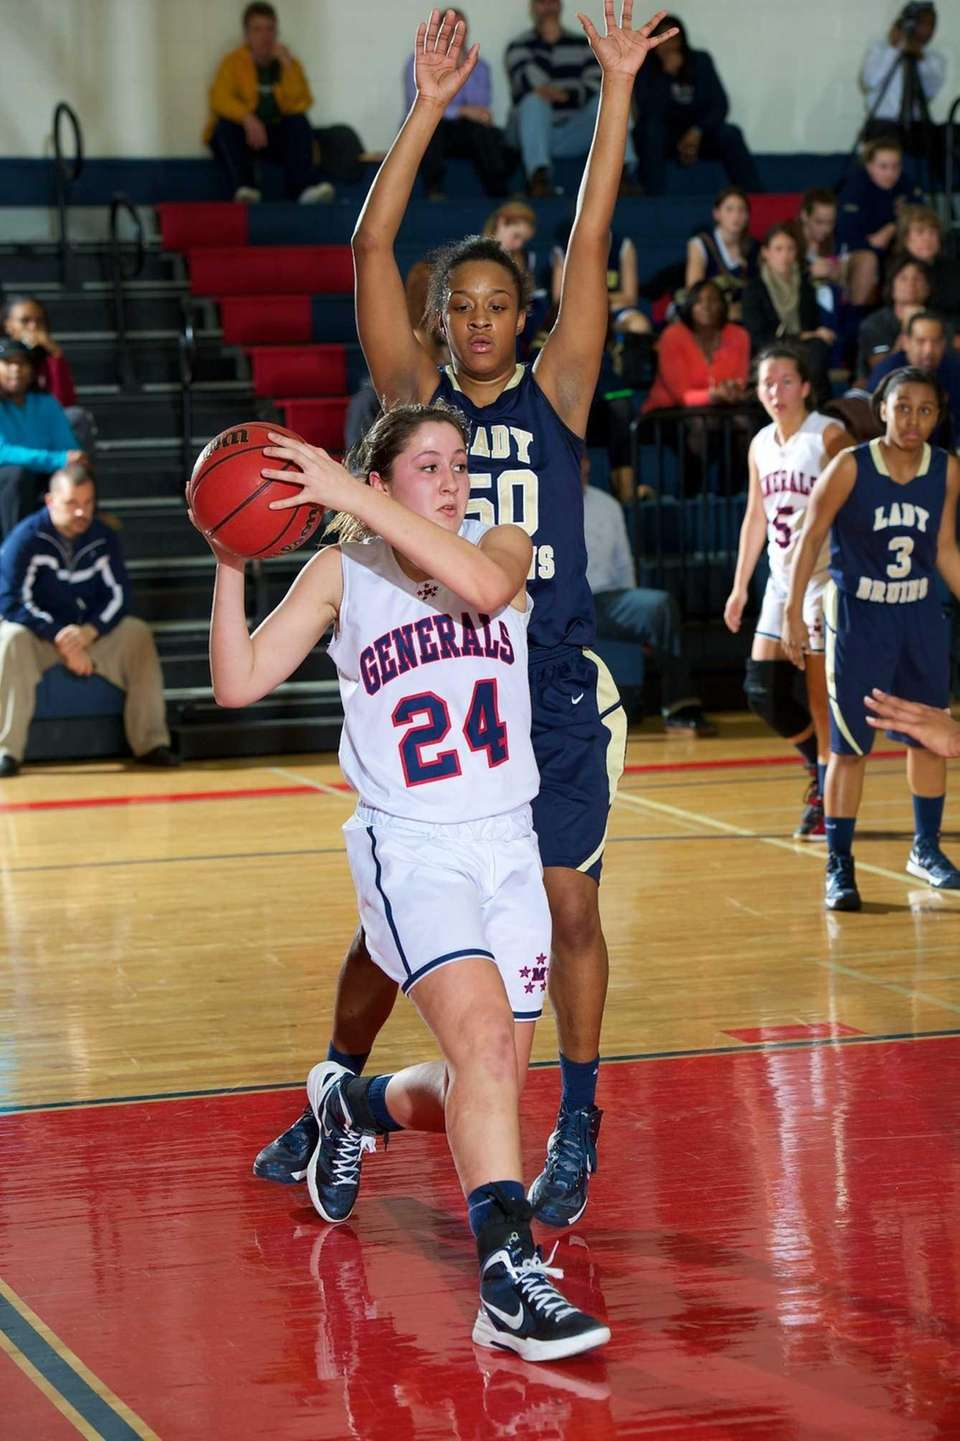 MacArthur junior Stephanie Volpe is tightly guarded under